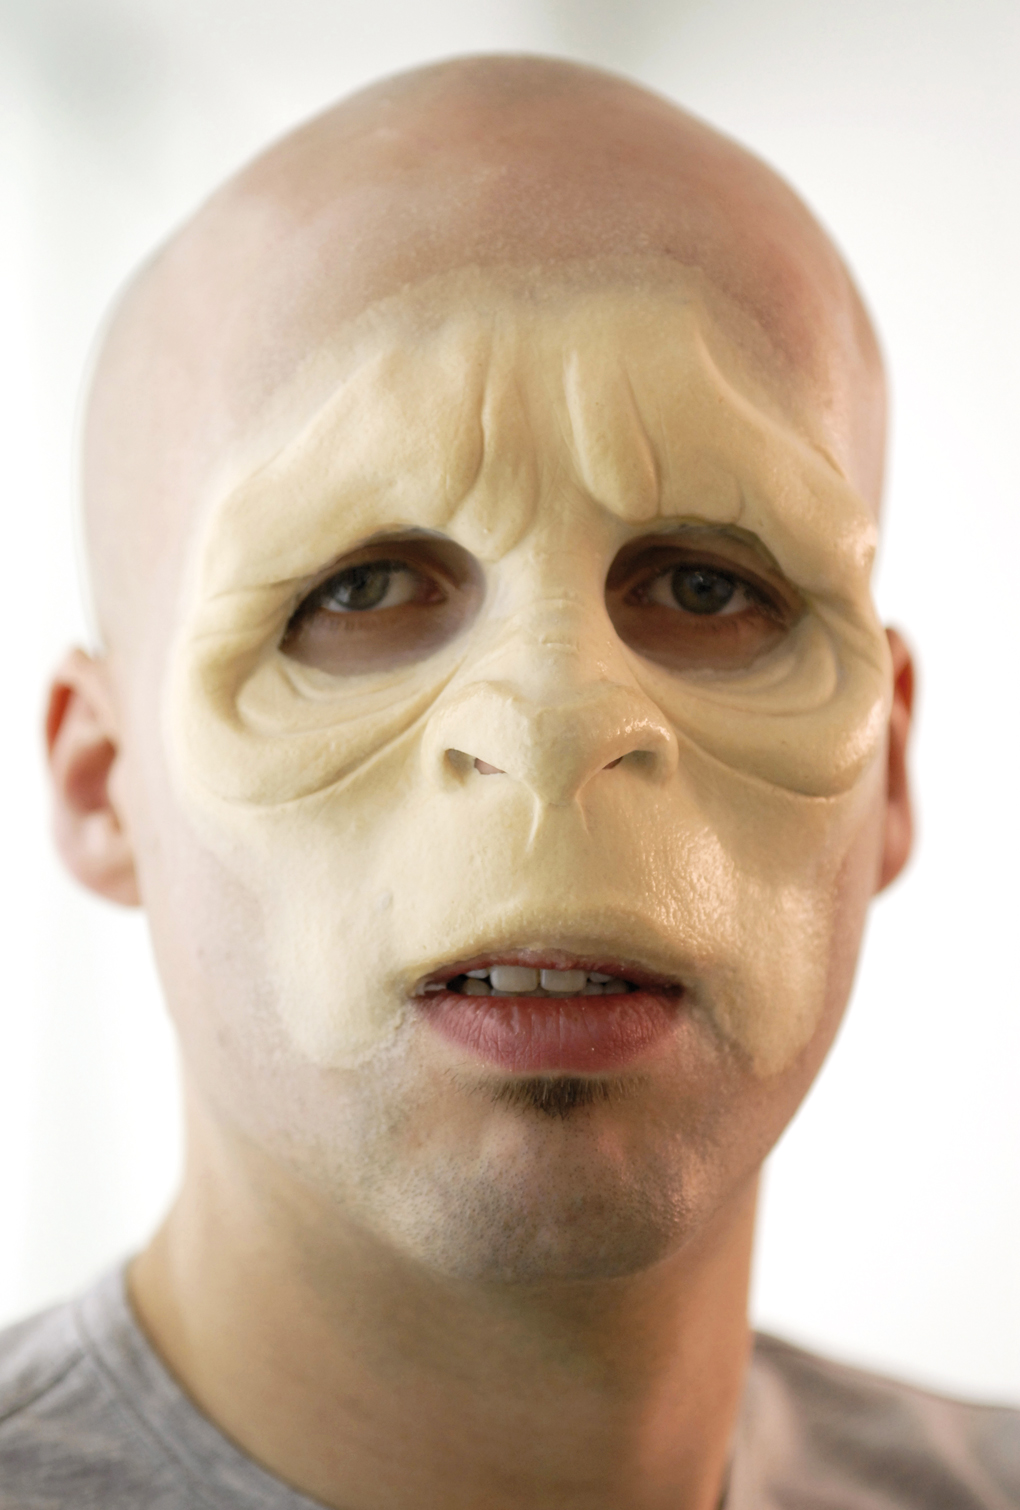 Michael Fliri, From the forbidden zone (make-up), 2009.